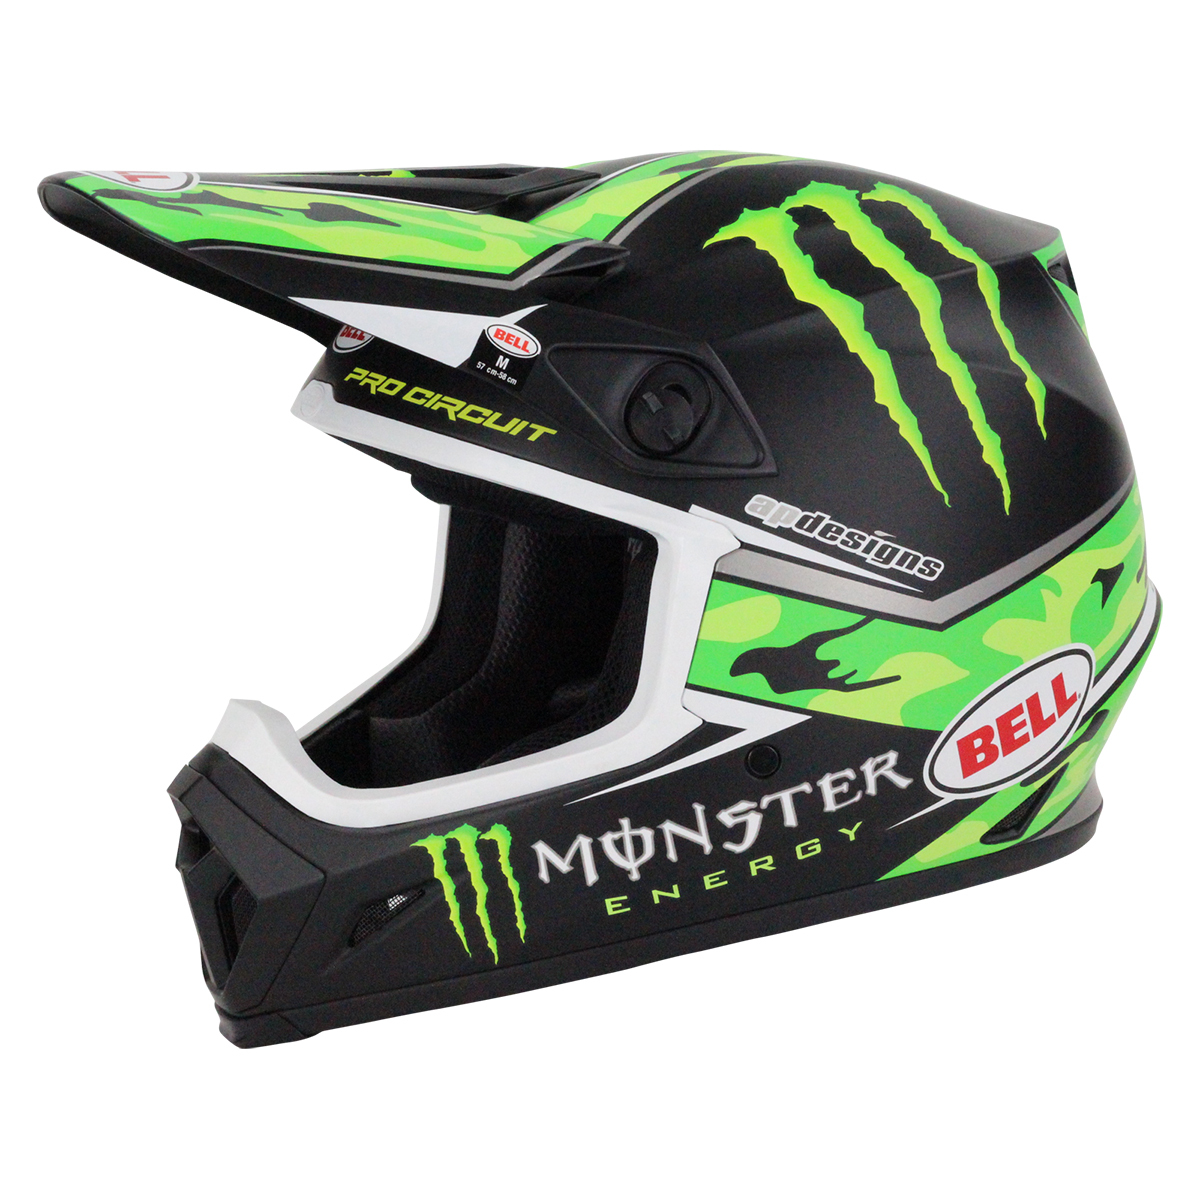 ... NEW 2017 MX-9 Pro Circuit Monster Kawasaki Camo Green Motocross Helmet